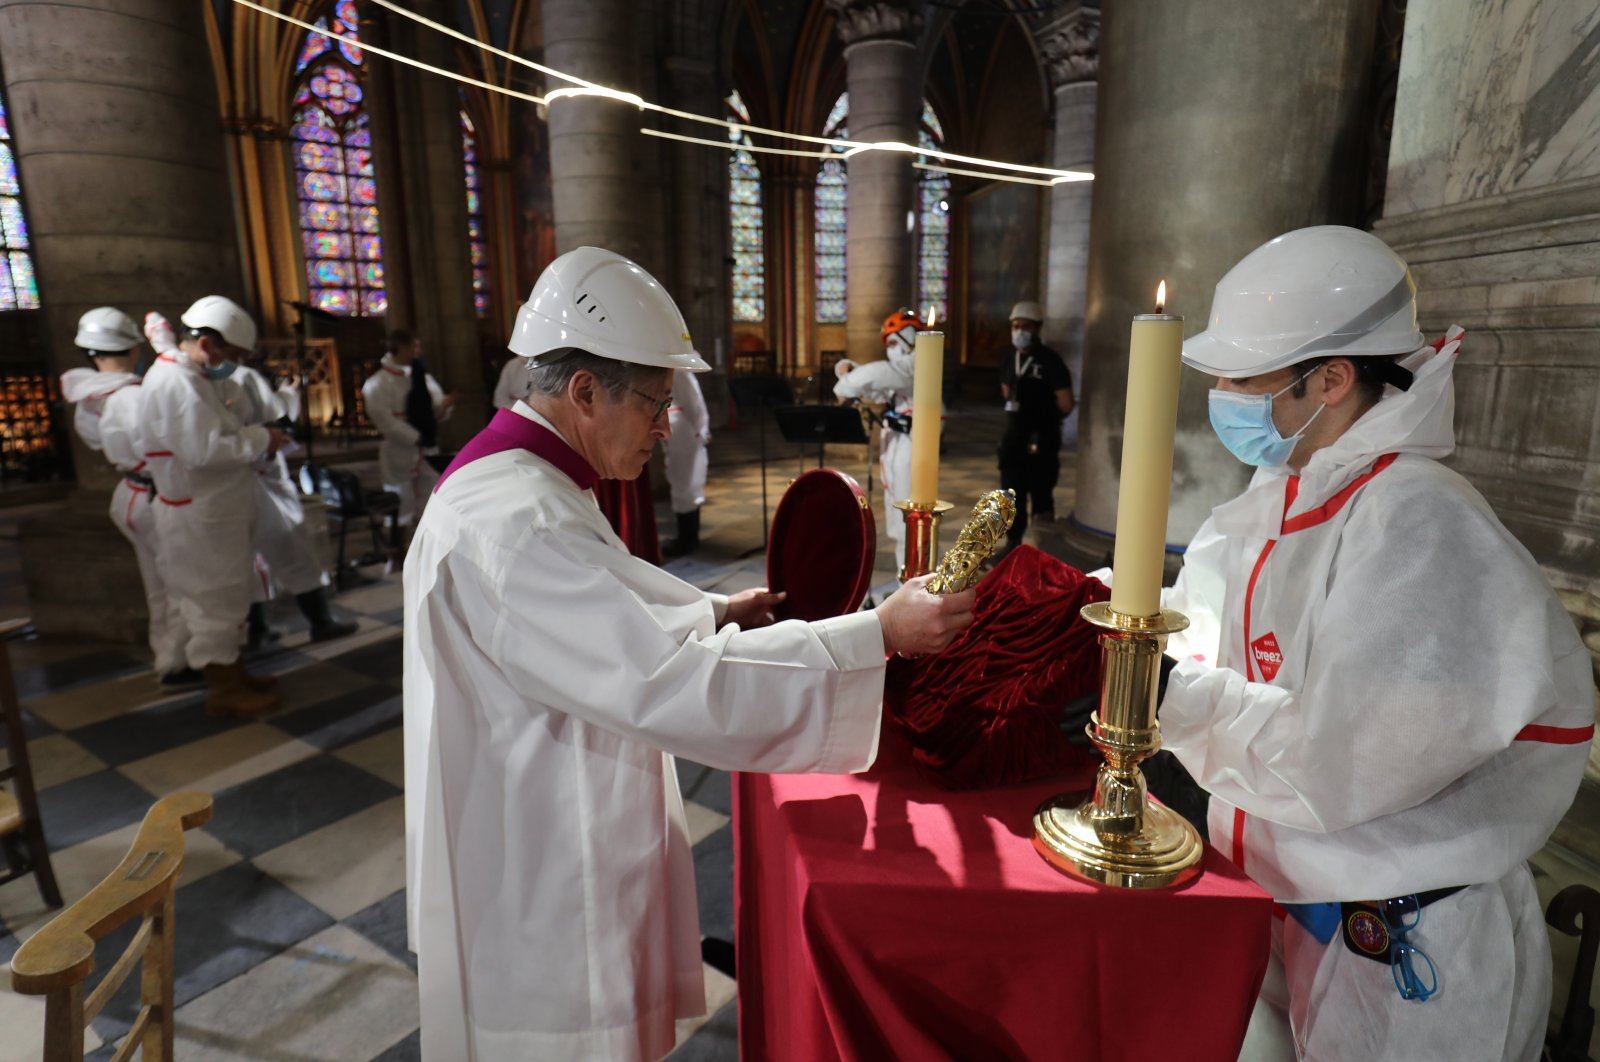 In a secured part of the Notre Dame Cathedral, its rector, Patrick Chauvet, holds the Crown of Thorns during a ceremony to celebrate Good Friday in Paris, France, April 10, 2020. (AP Photo)